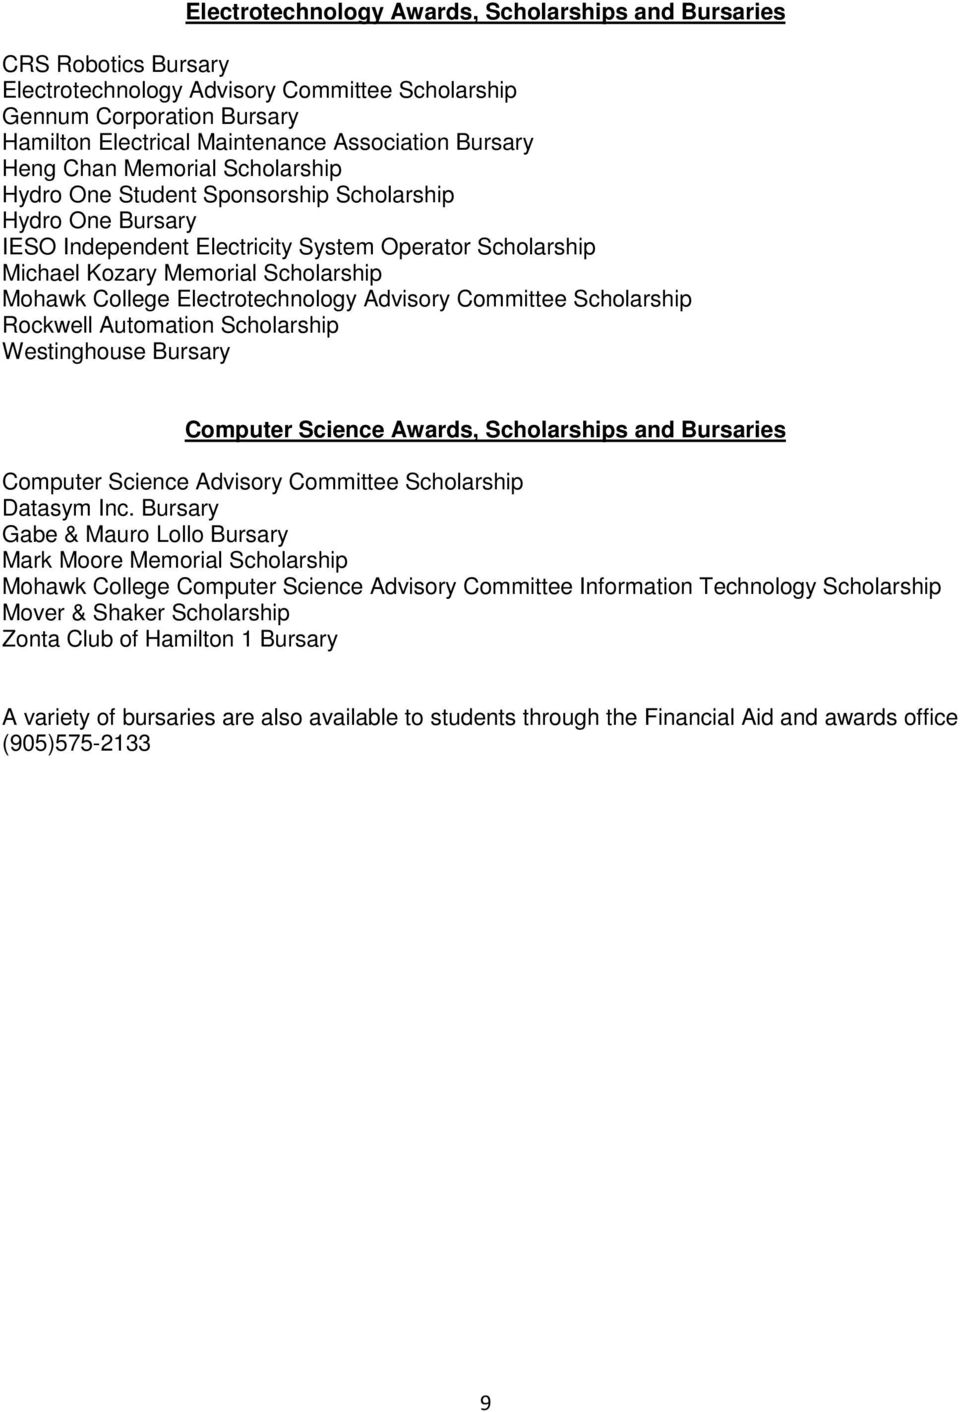 College Electrotechnology Advisory Committee Scholarship Rockwell Automation Scholarship Westinghouse Bursary Computer Science Awards, Scholarships and Bursaries Computer Science Advisory Committee